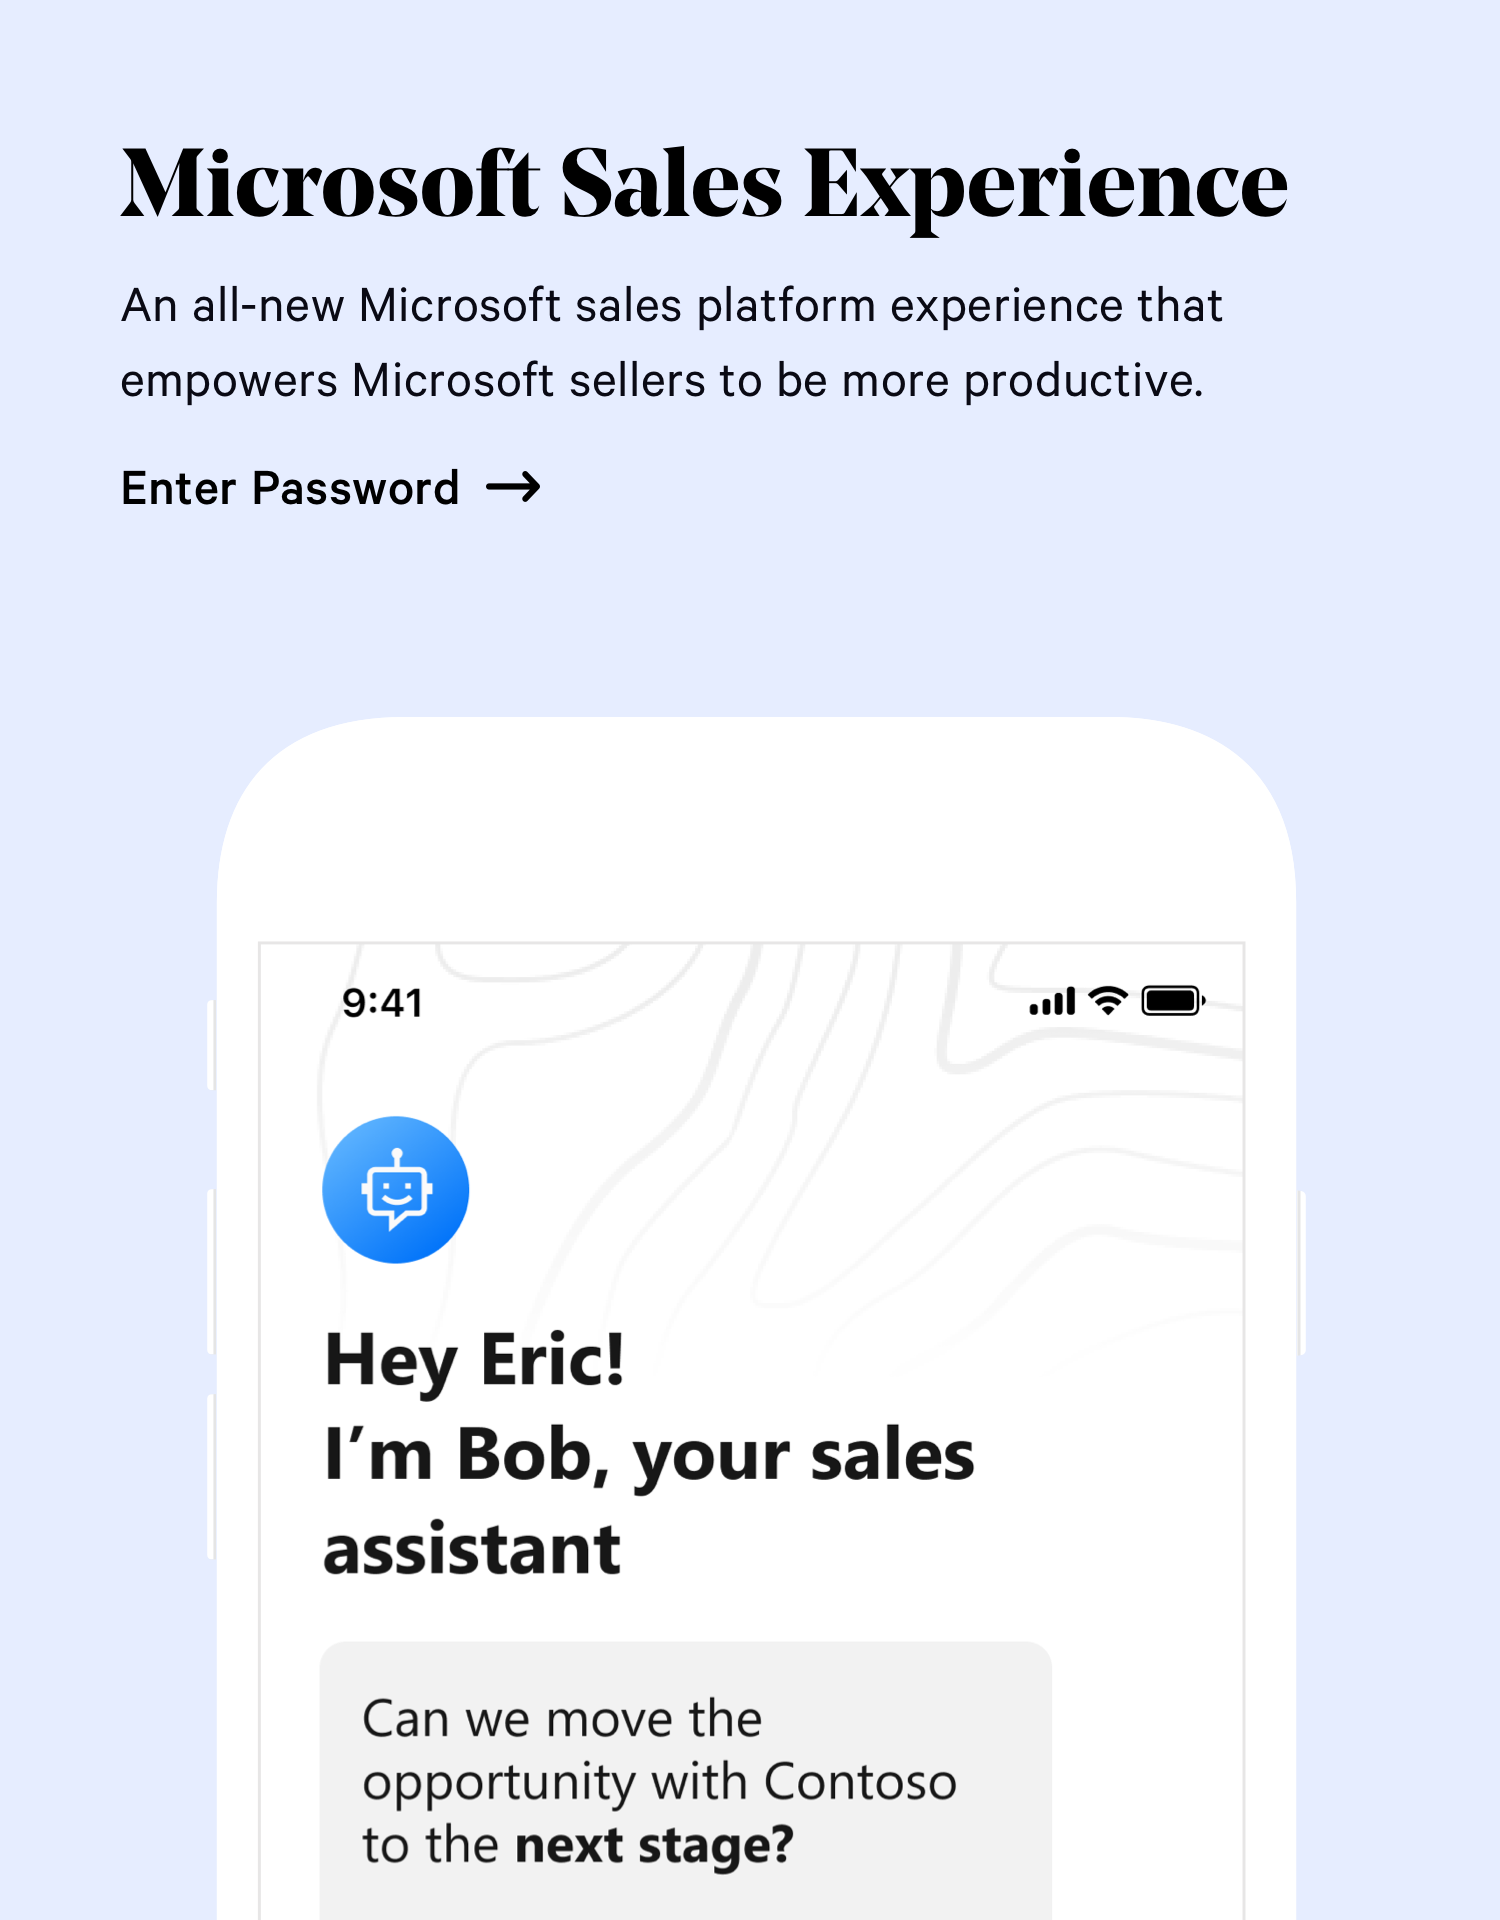 Microsoft Sales Experience